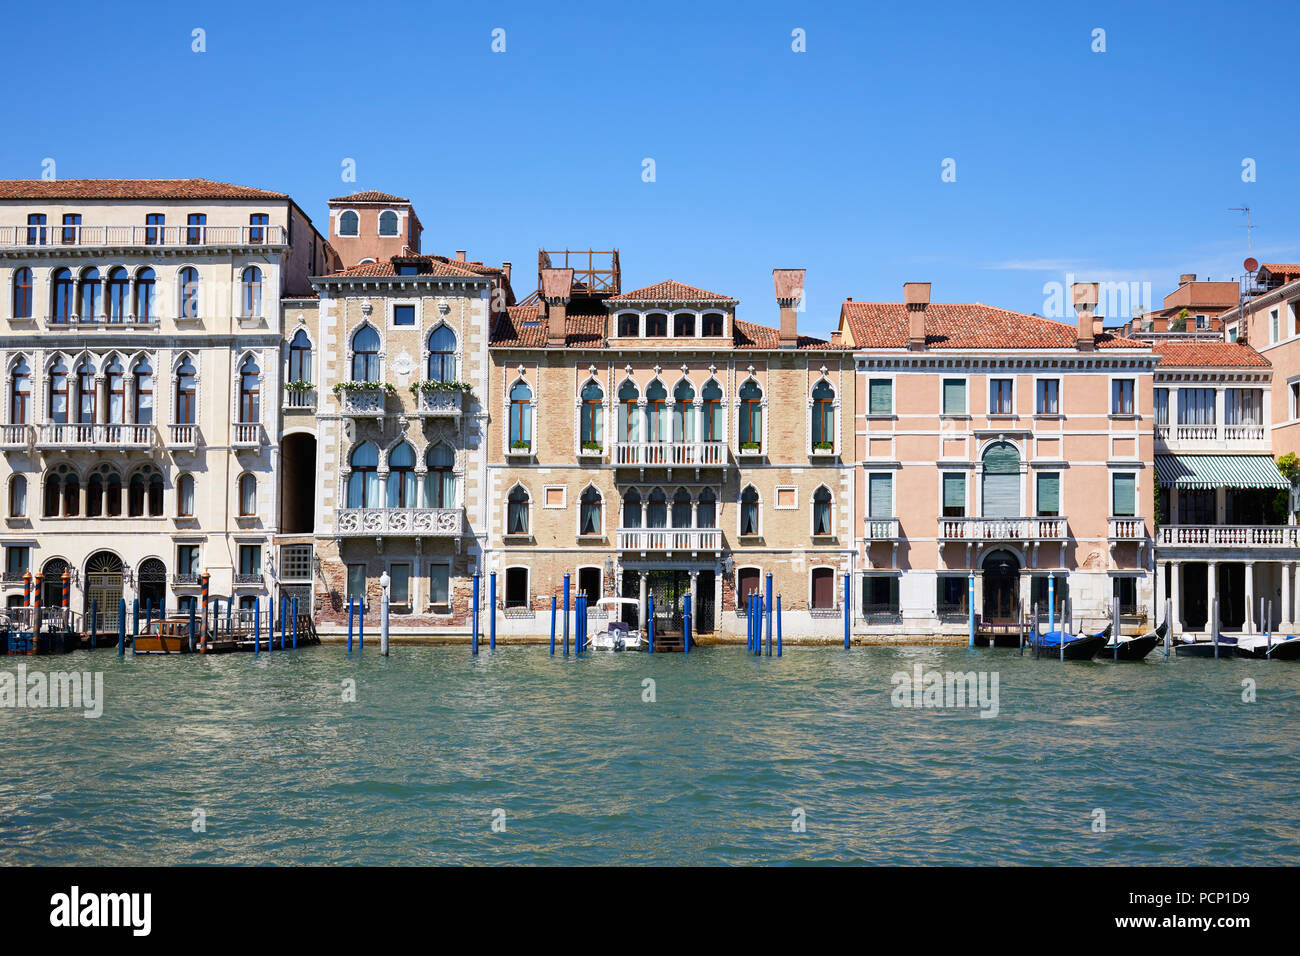 Venice ancient buildings facades and the grand canal in a sunny day in Italy - Stock Image